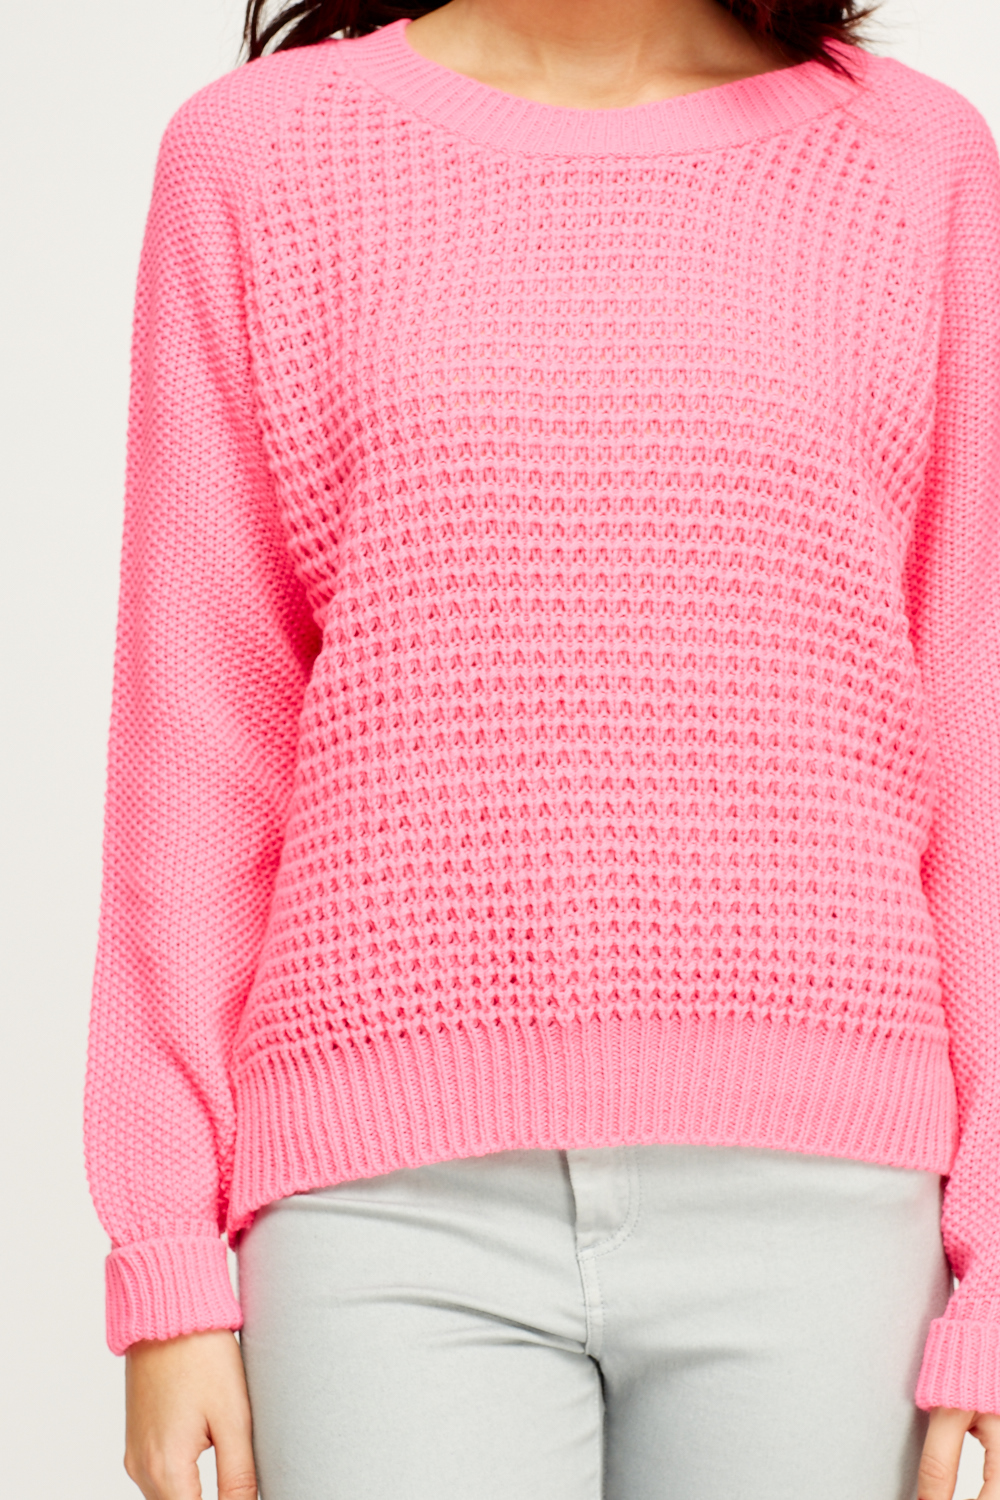 Find great deals on eBay for girls pink jumper. Shop with confidence.